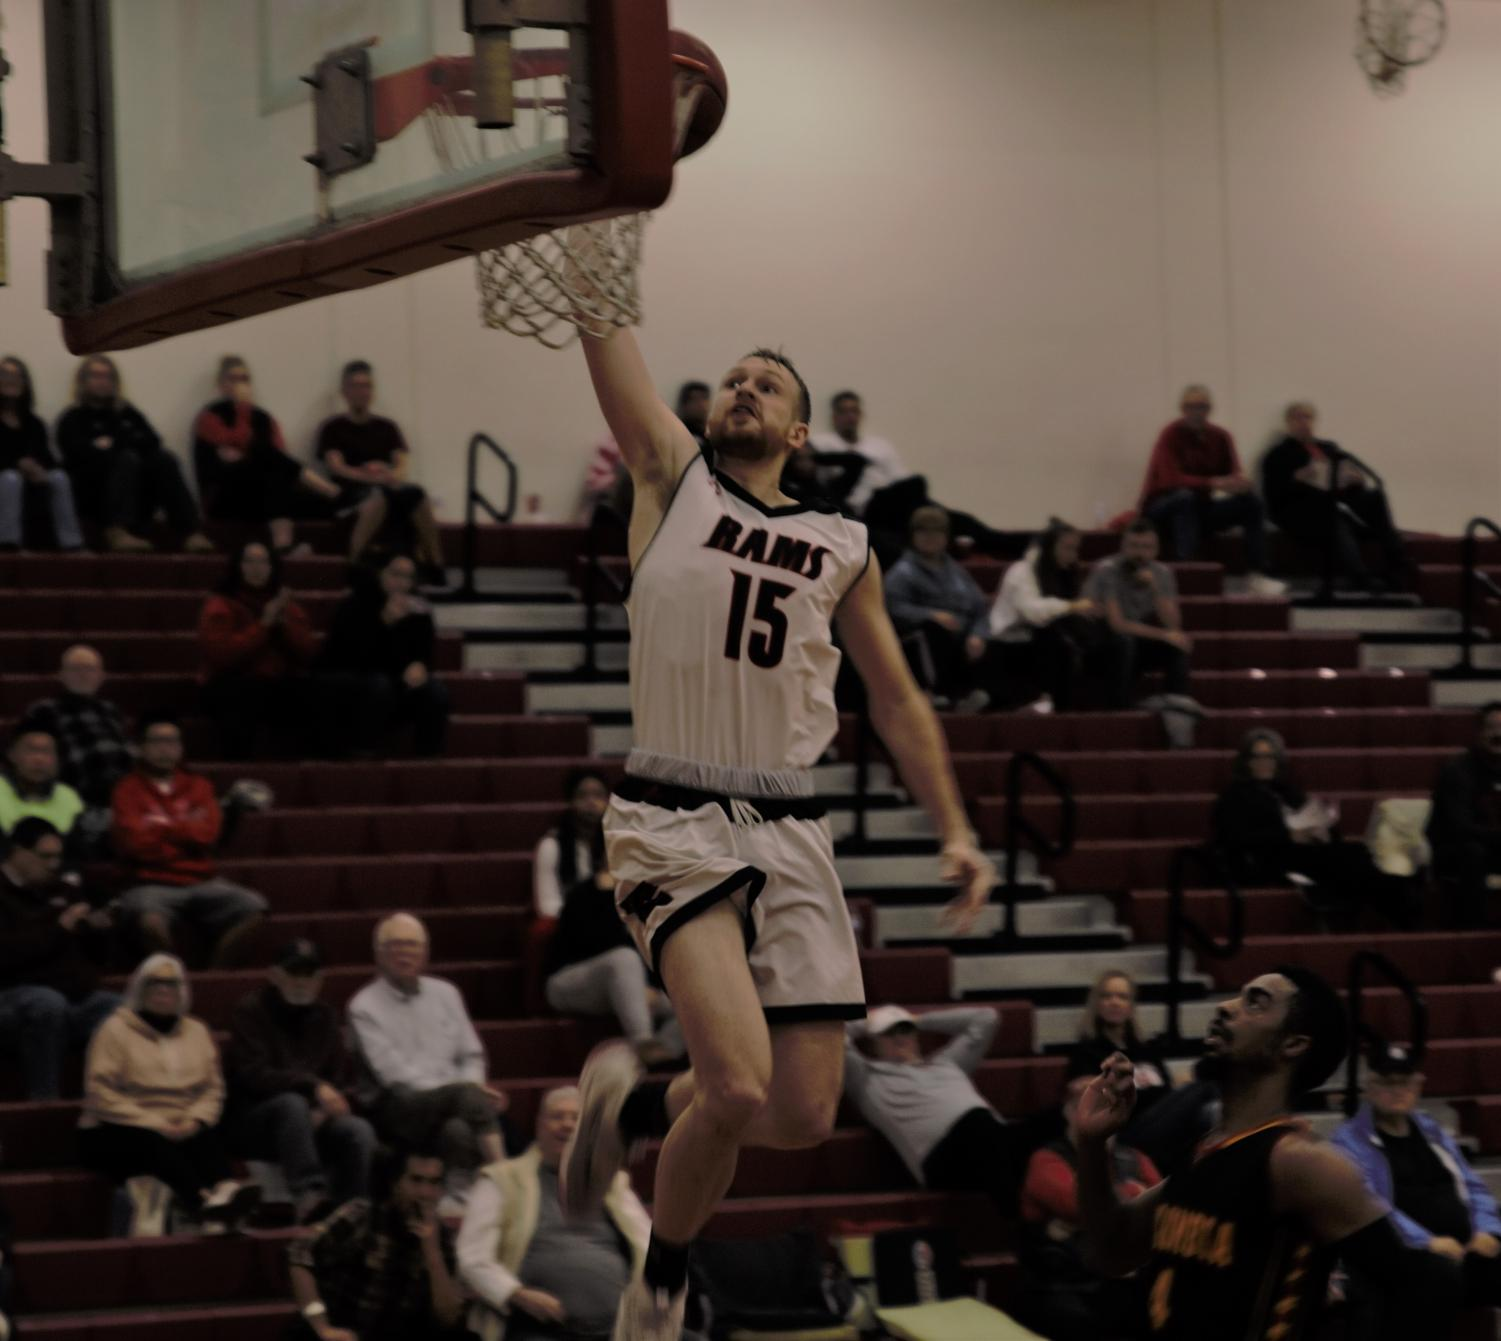 Ian Miller rises above the rim to score against Columbia College on Jan. 16, 2019.